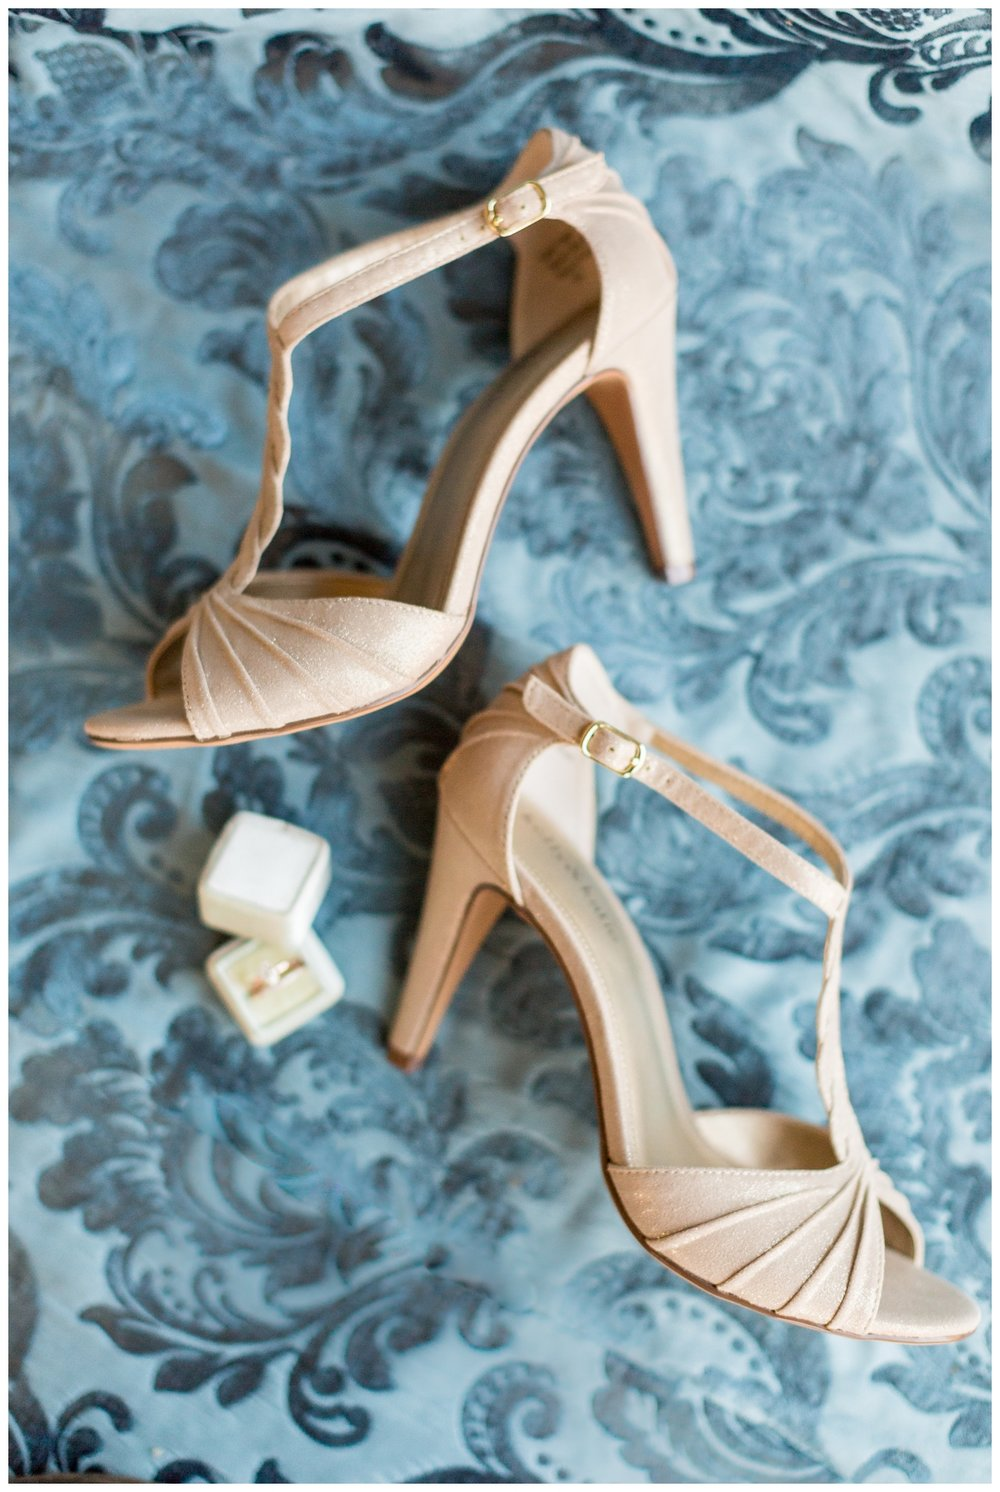 Brides designer shoes styled perfectly on La Tavola Linen from her Northern California New Years Eve wedding